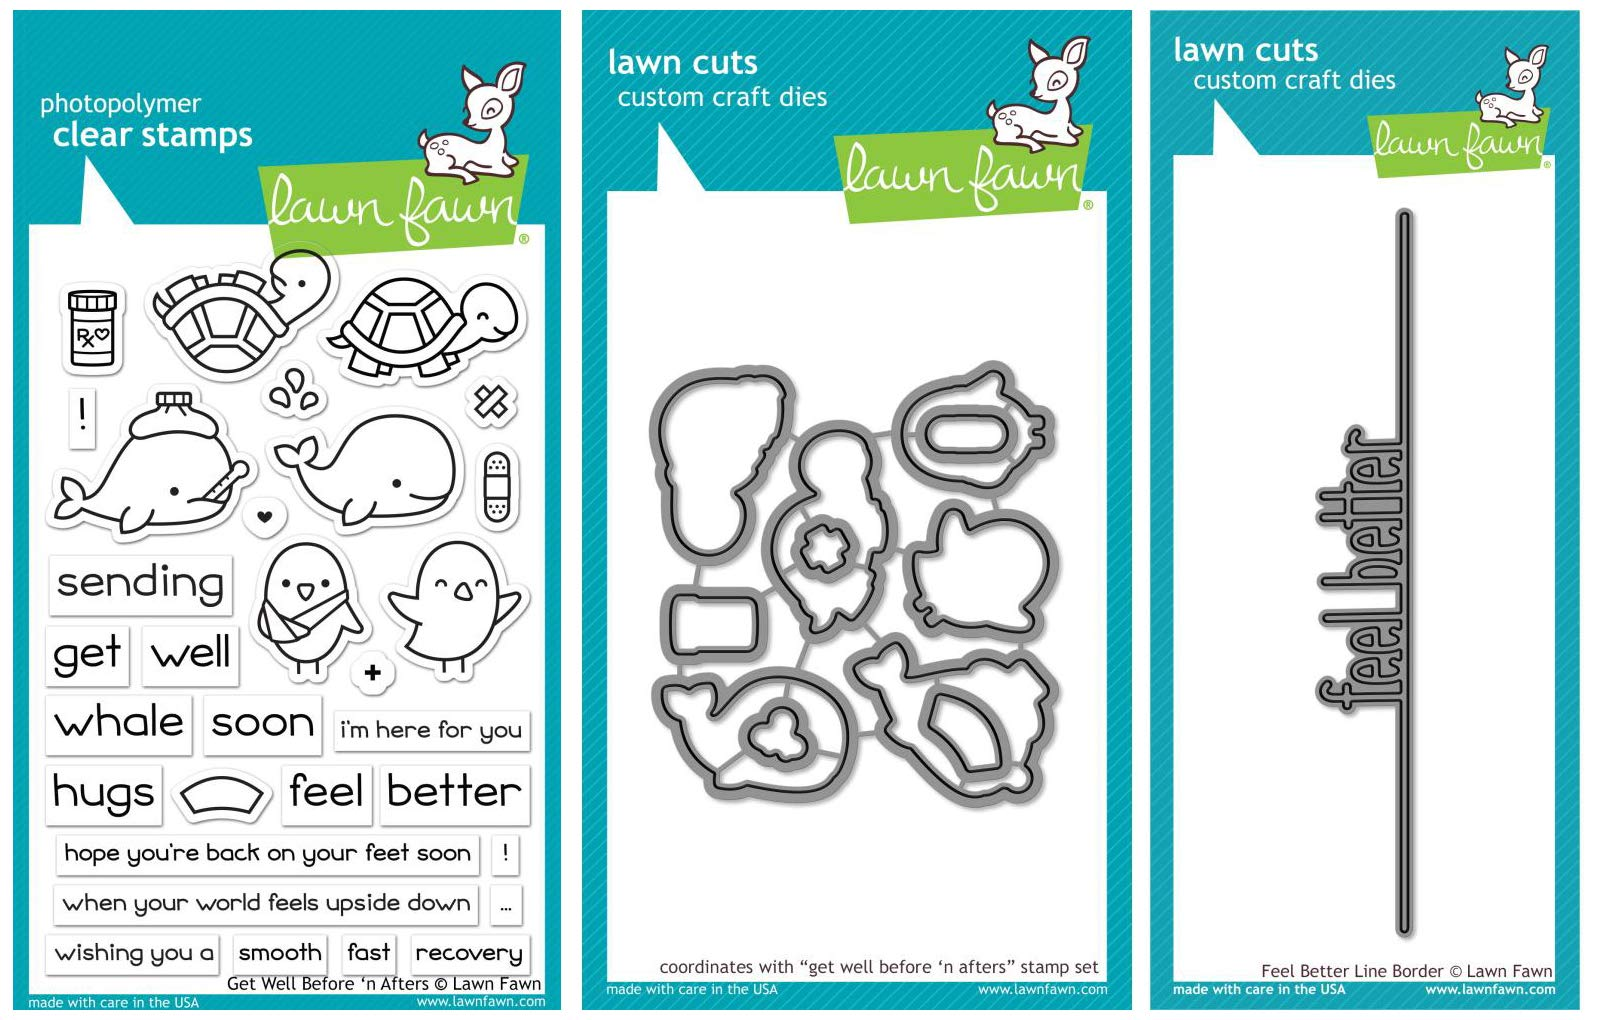 Lawn Fawn - Get Well Bundle - Get Well Before 'n After Clear Stamp and Die Sets with Feel Better Line Border Die - 3 Items